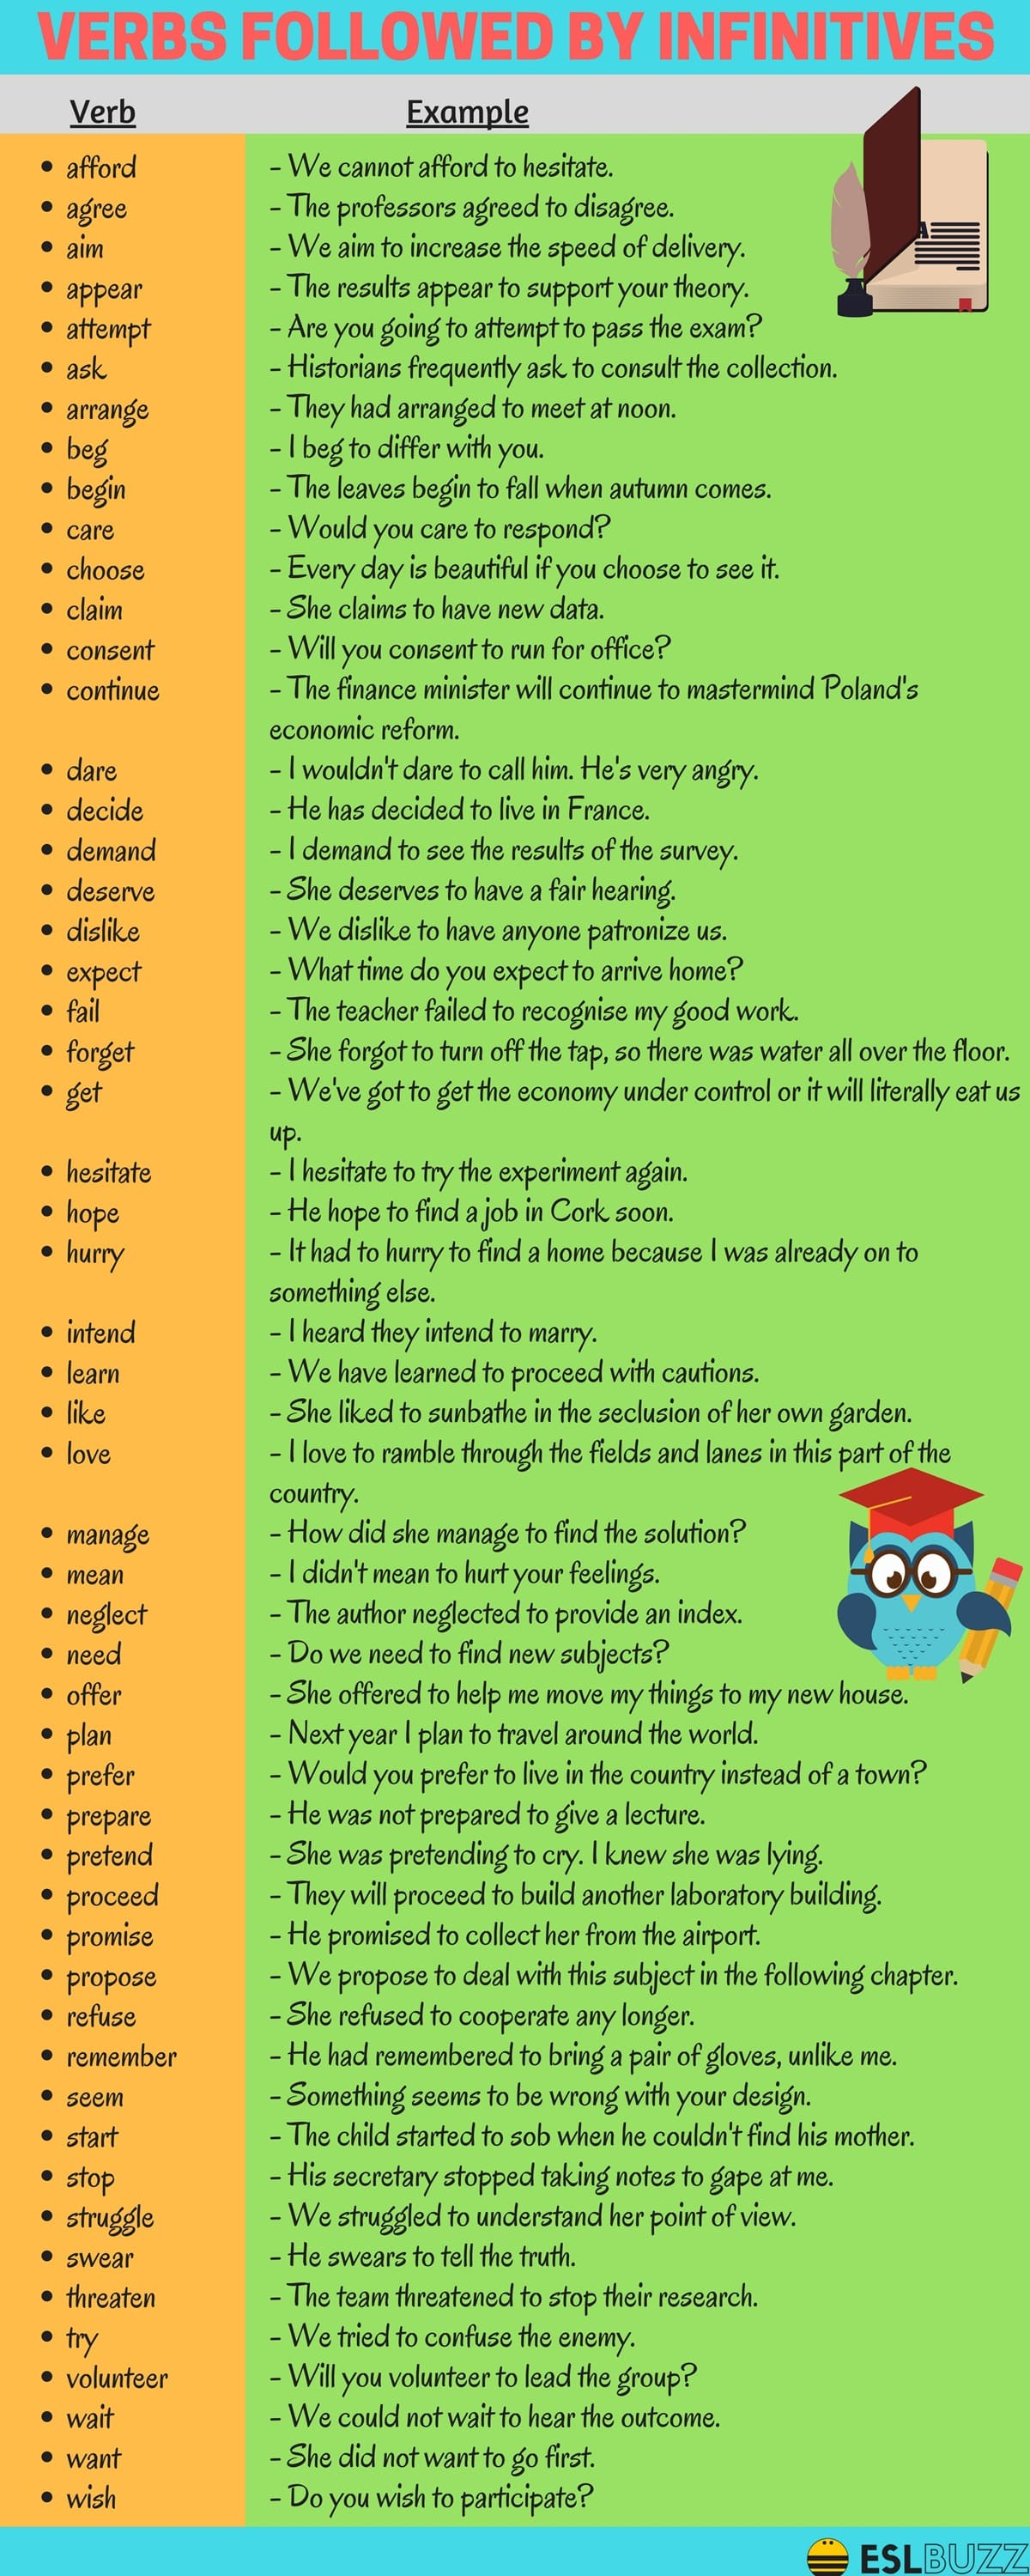 Verbs Followed by Infinitives in English